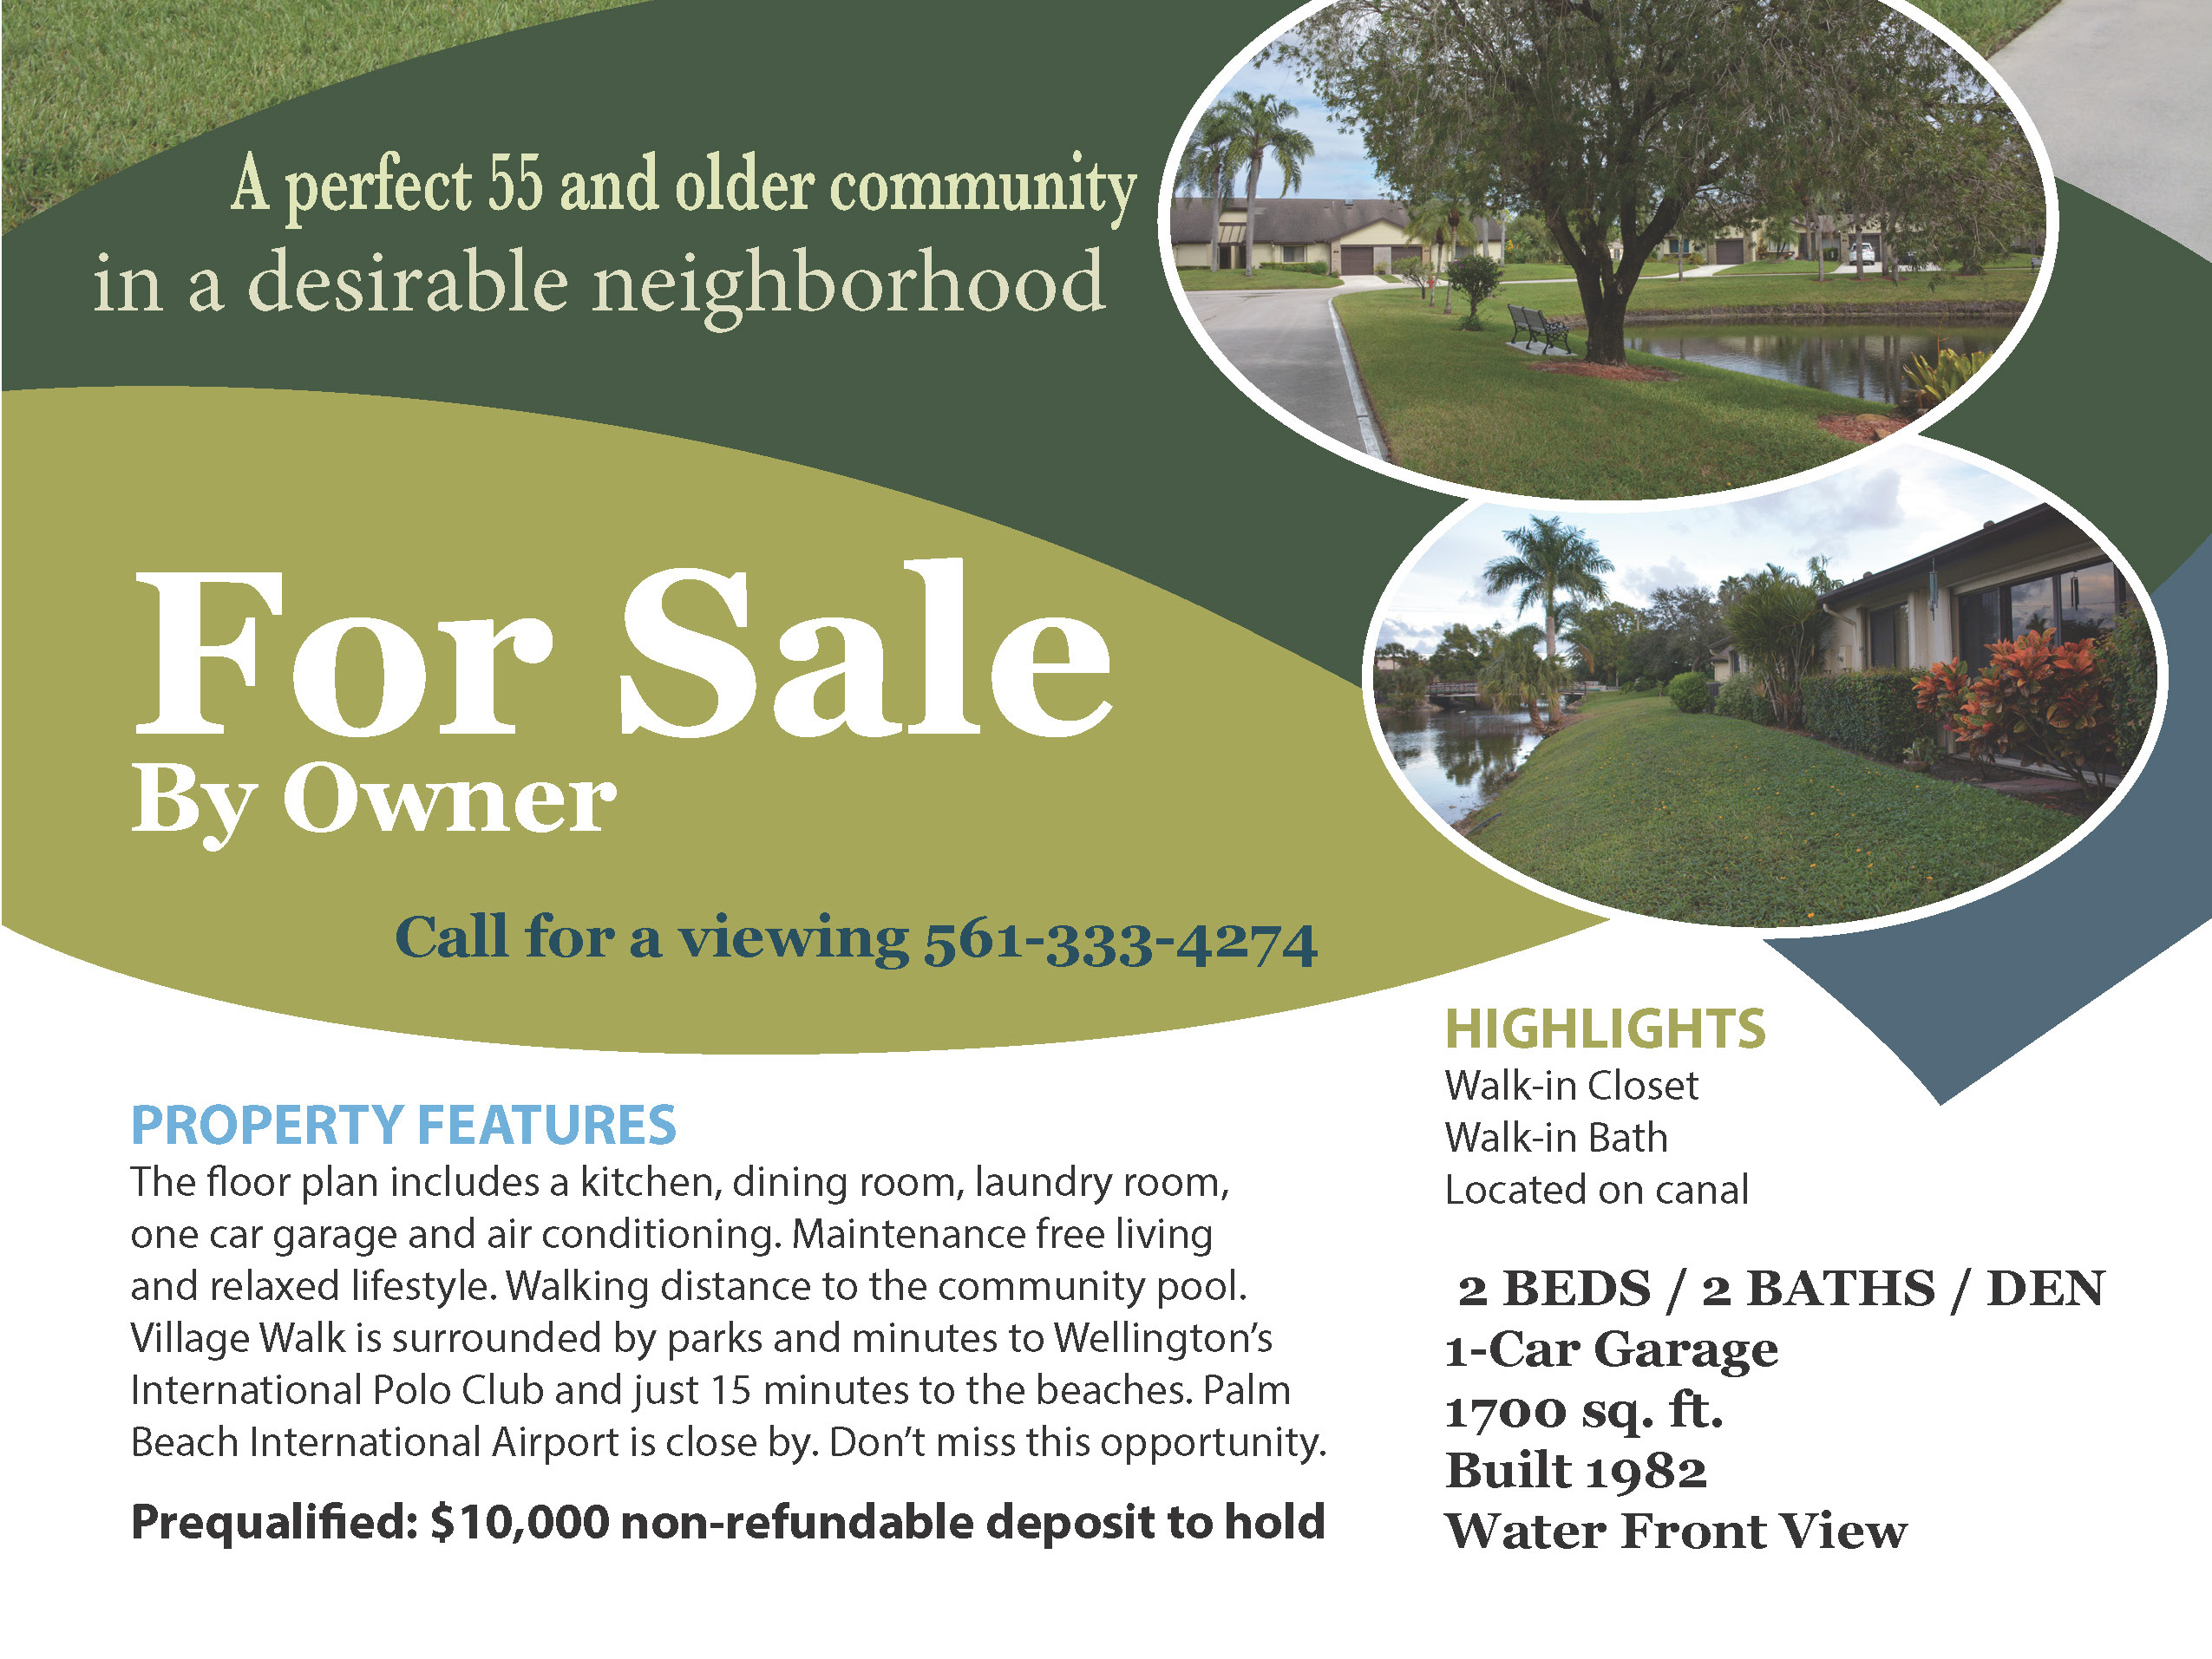 Townhouse for sale by owner In 55+ Community -110 Village Walk Drive, Royal Palm Beach, FL 33411